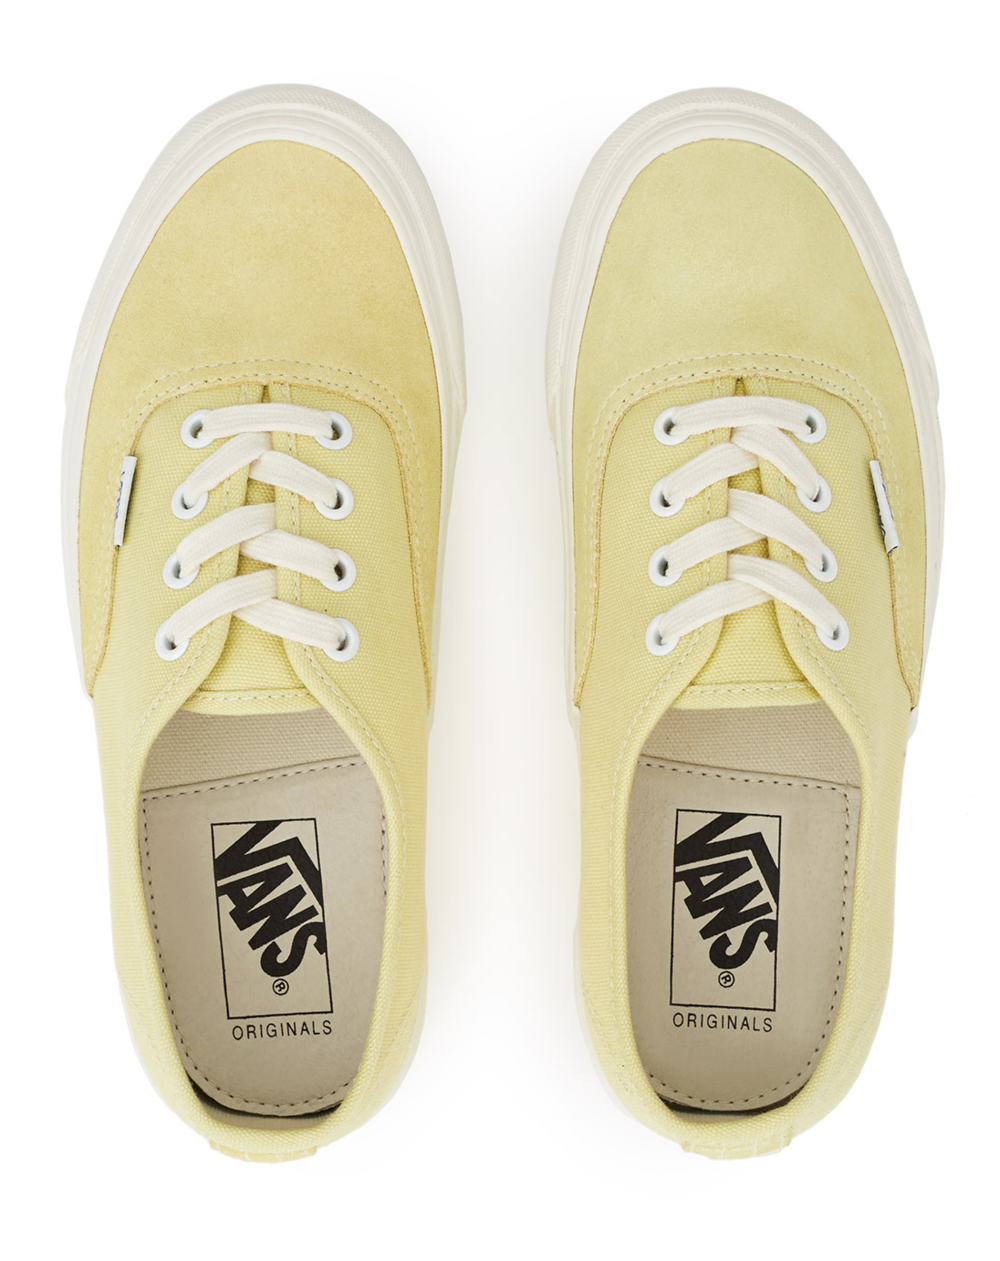 0baeee519b Vault by Vans OG Authentic LX Pastel Collection — strictly waffles.